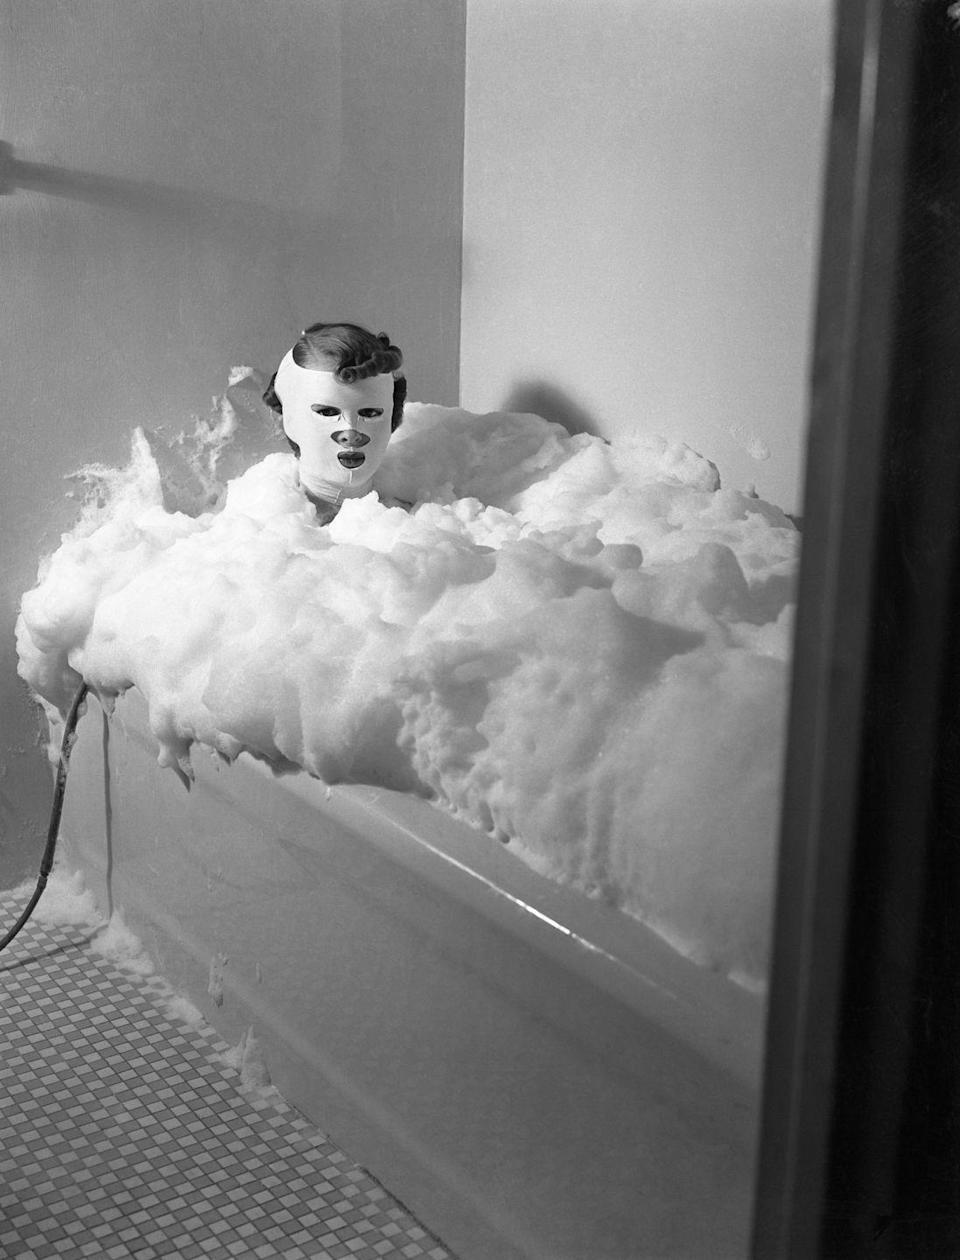 <p>A woman wears a contouring compression mask as she sits in a tub in 1937. The bath is pumped with milk powder to make the water bubble. </p>